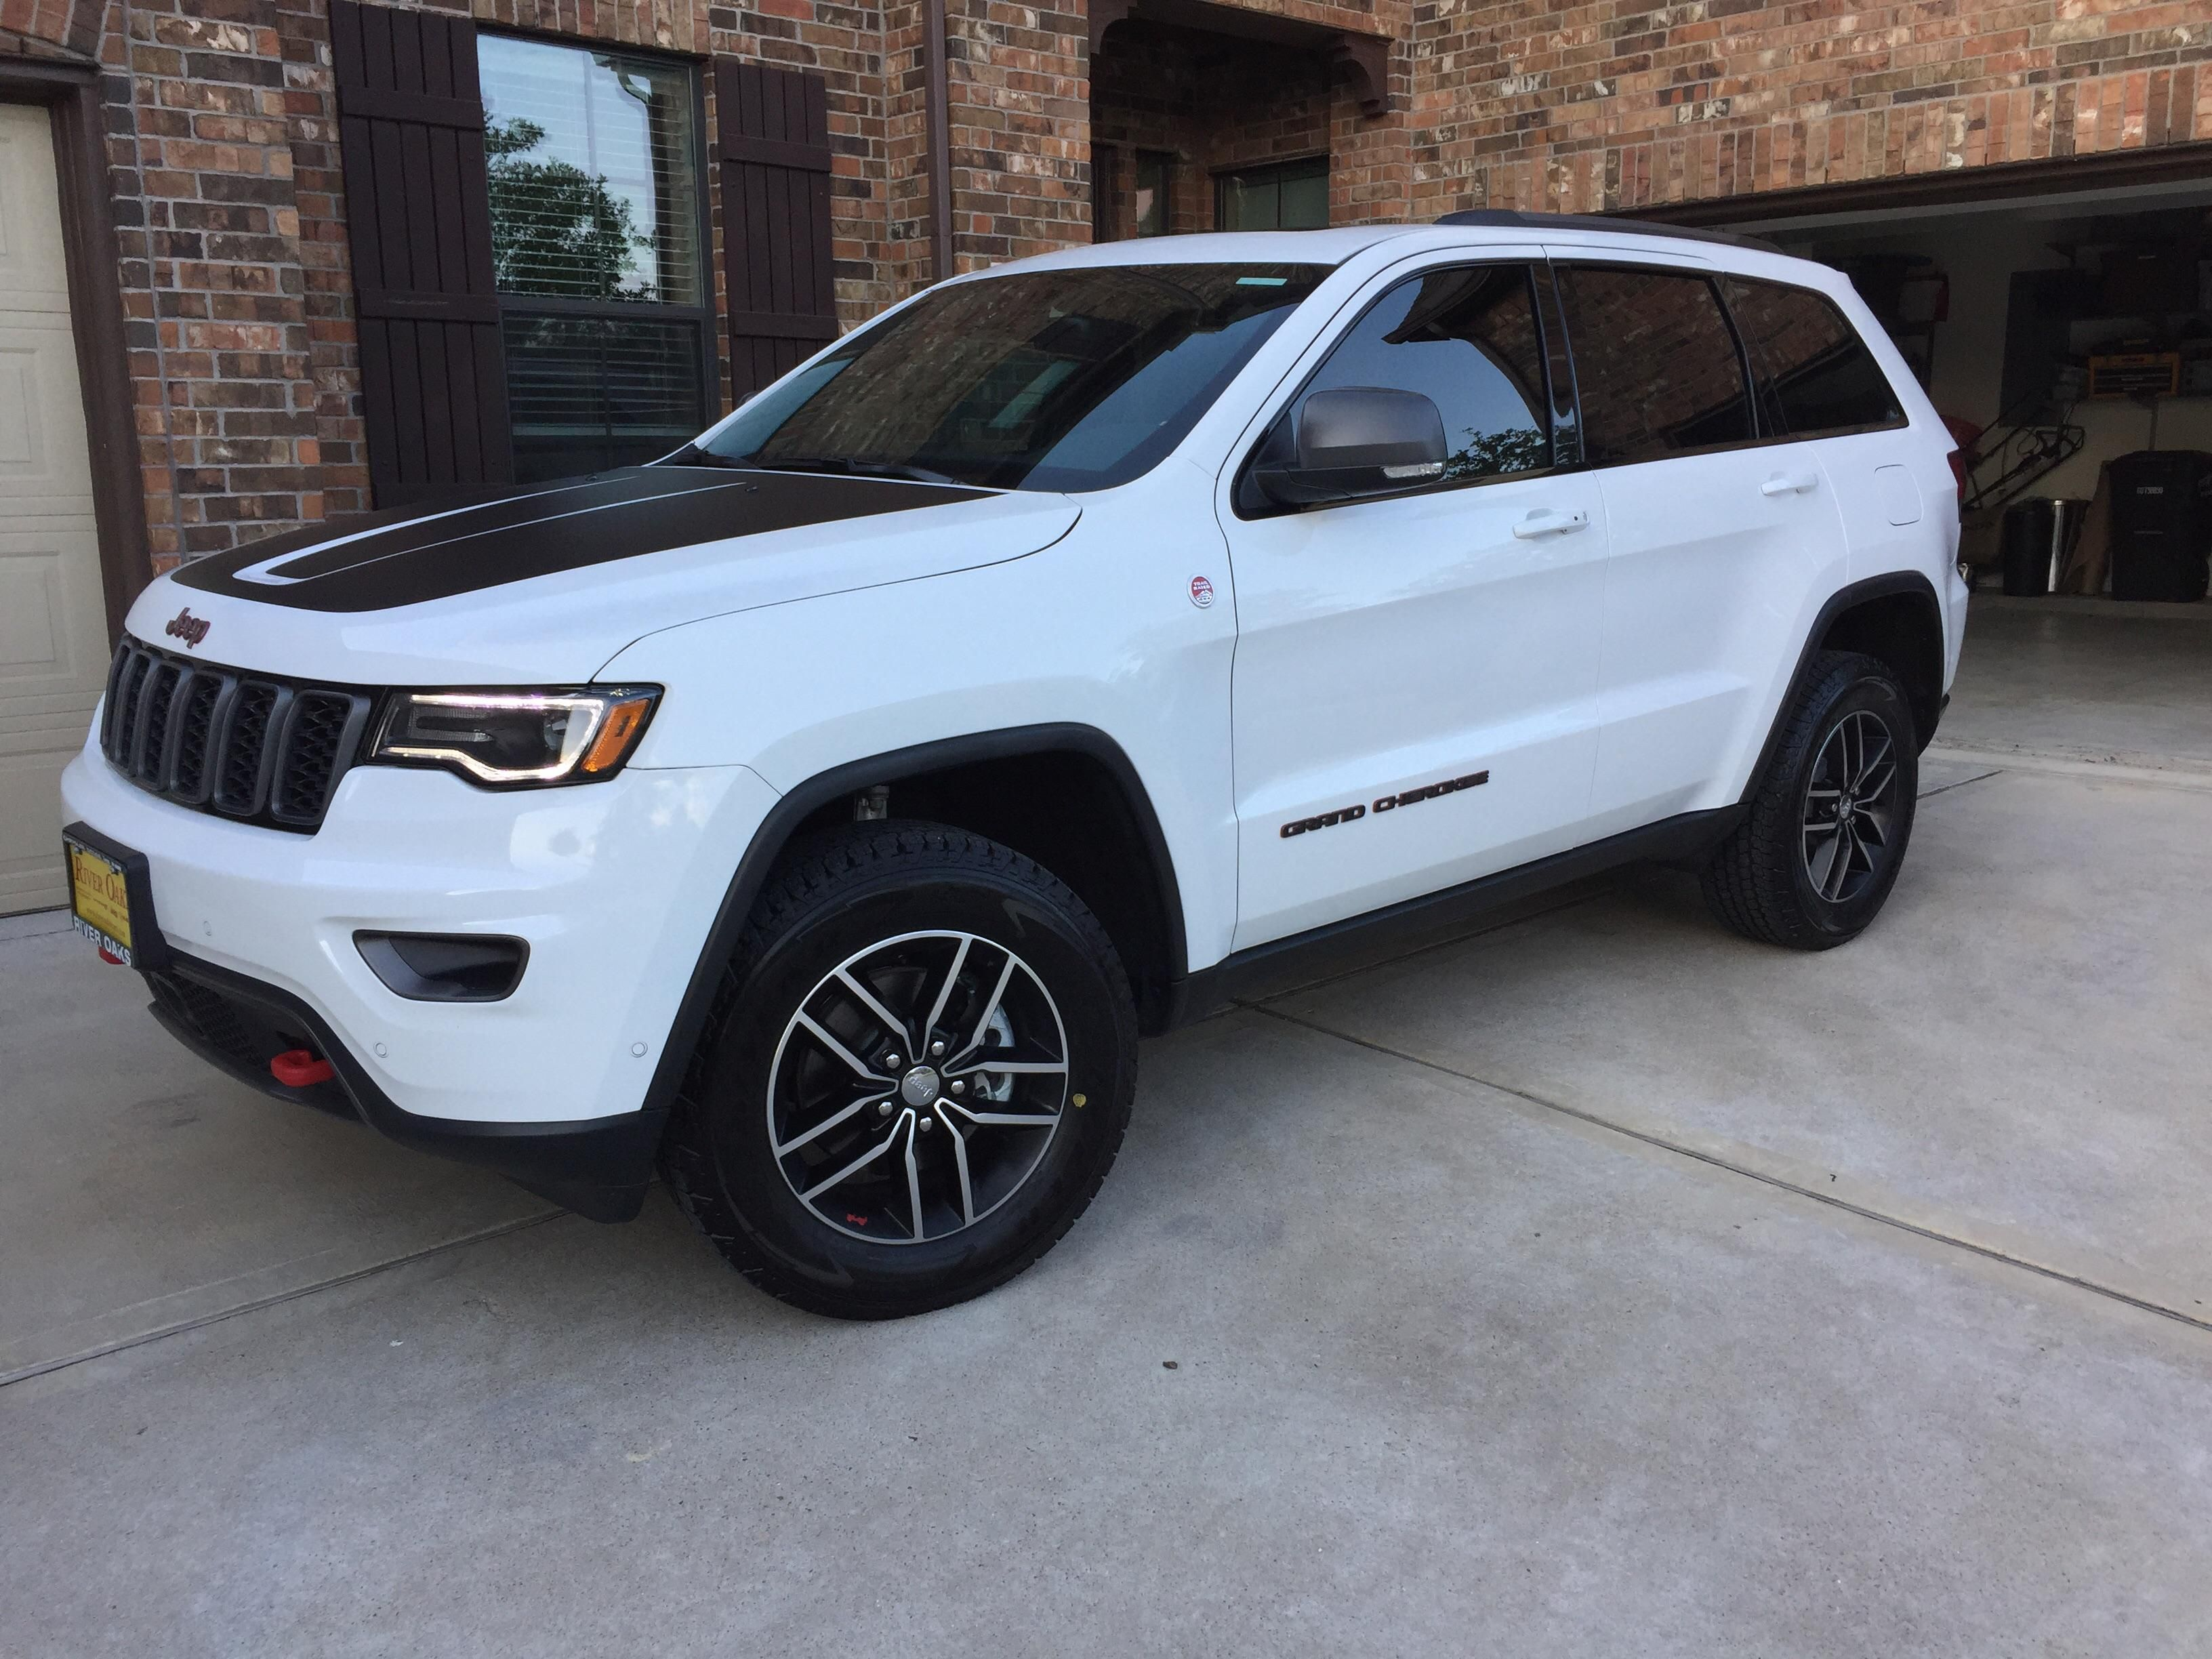 Sold My Panda 10a Rubicon Last Year But Back To The Jeep Family With A Panda Grand Cherokee Trailhawk For The W Jeep Cherokee Jeep Trailhawk Cherokee Trailhawk